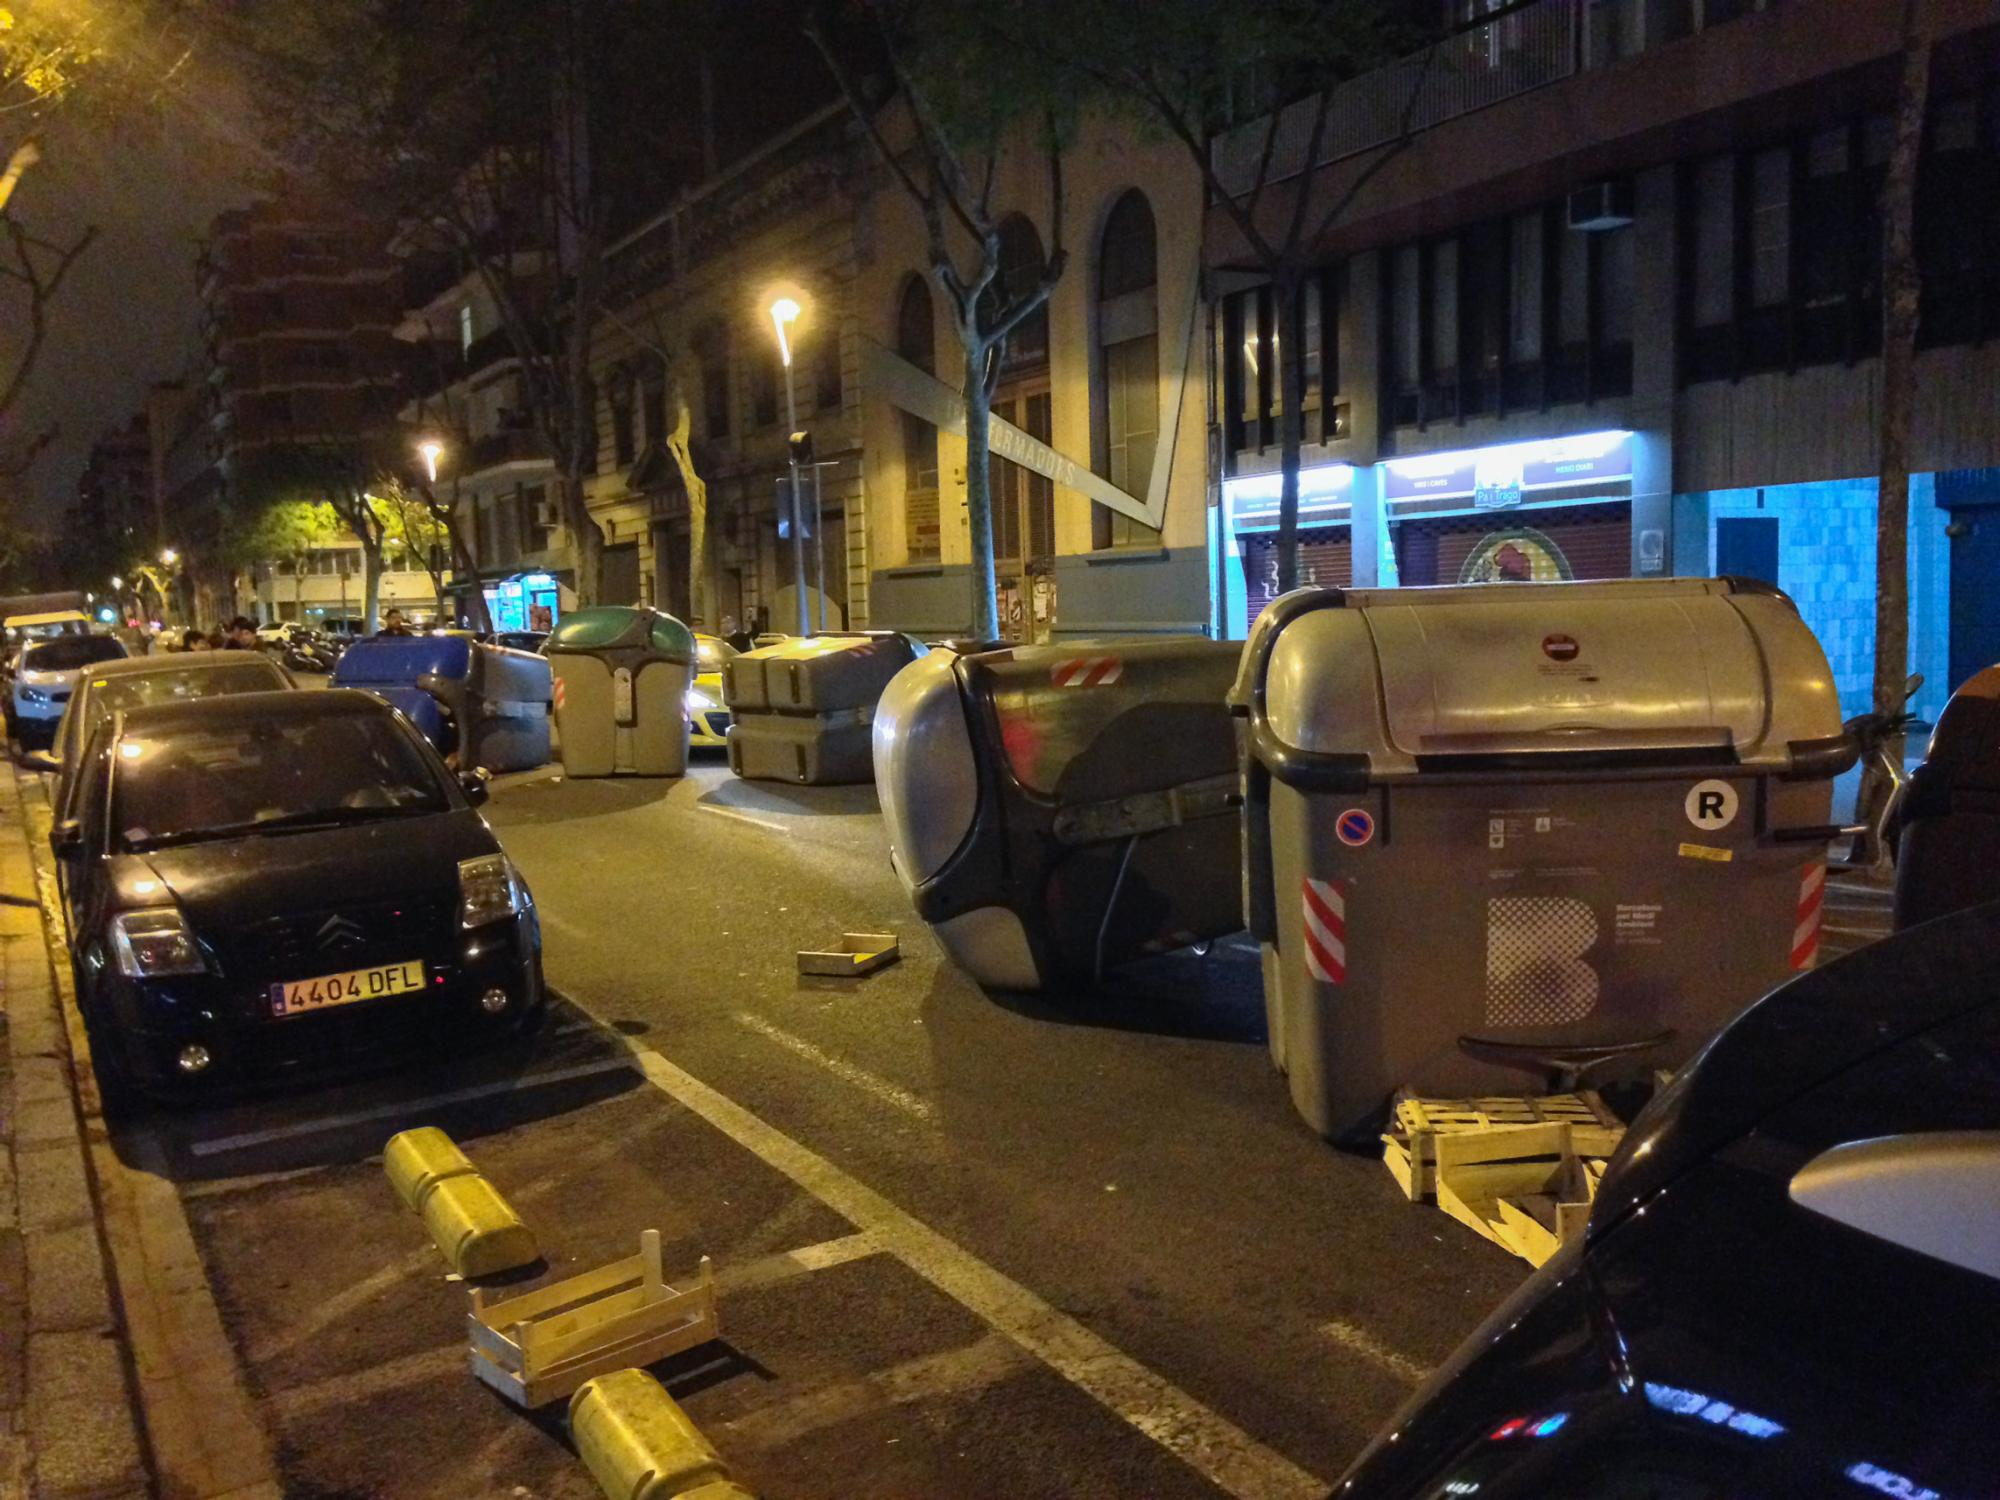 Overturned garbage cans as a consequence of the demonstration in Barcelona